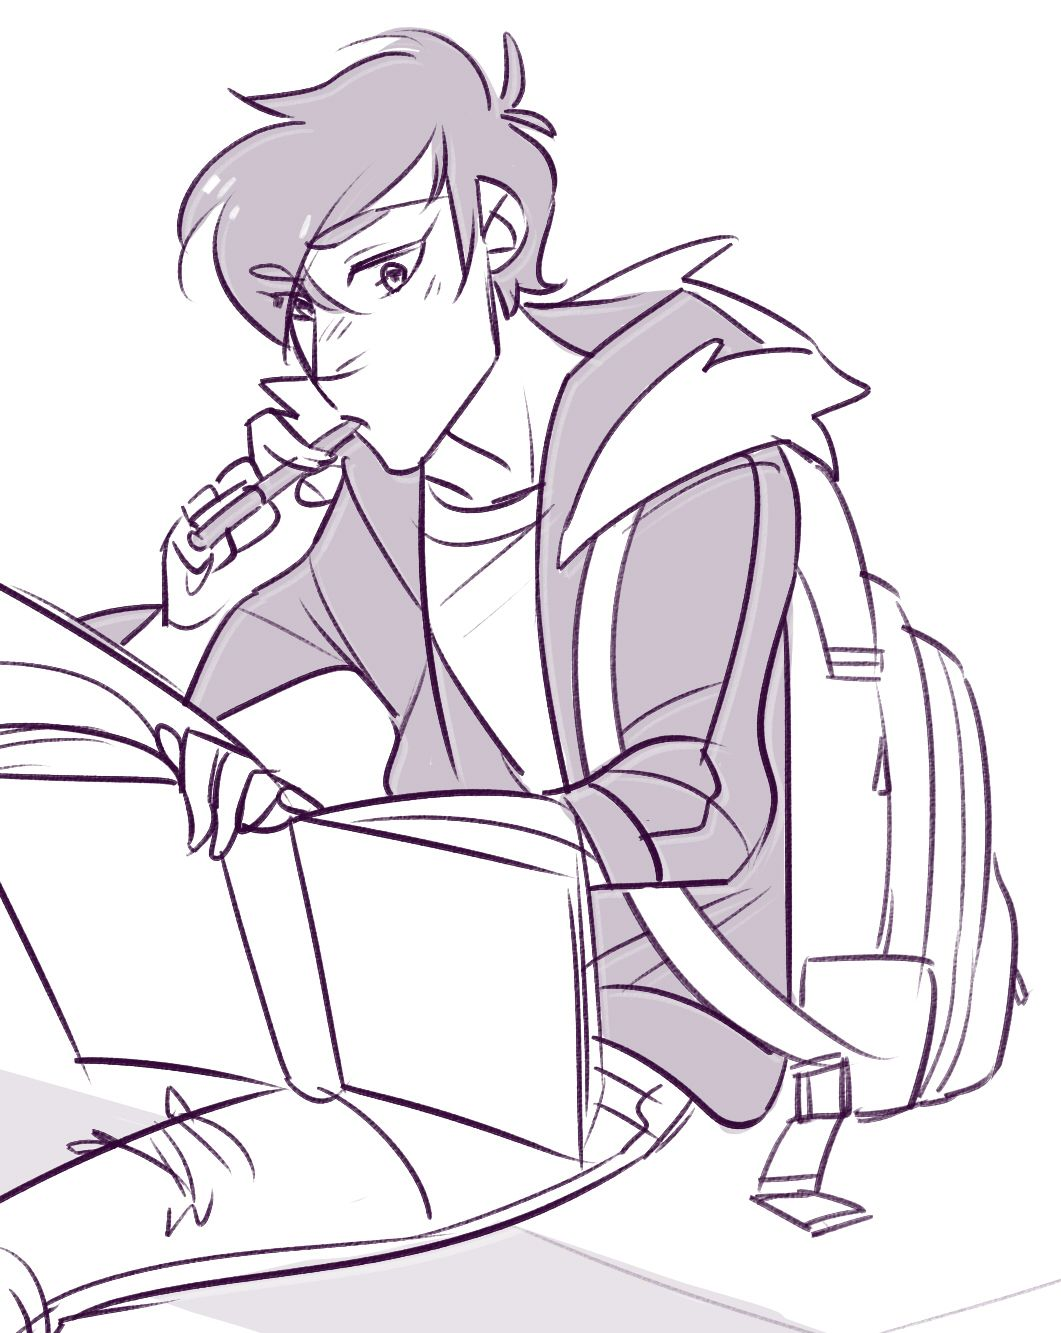 young shiro studying astrophysics on his own time before being Stealth Pick Up shiro studying astrophysics on his own time before being picked up from school